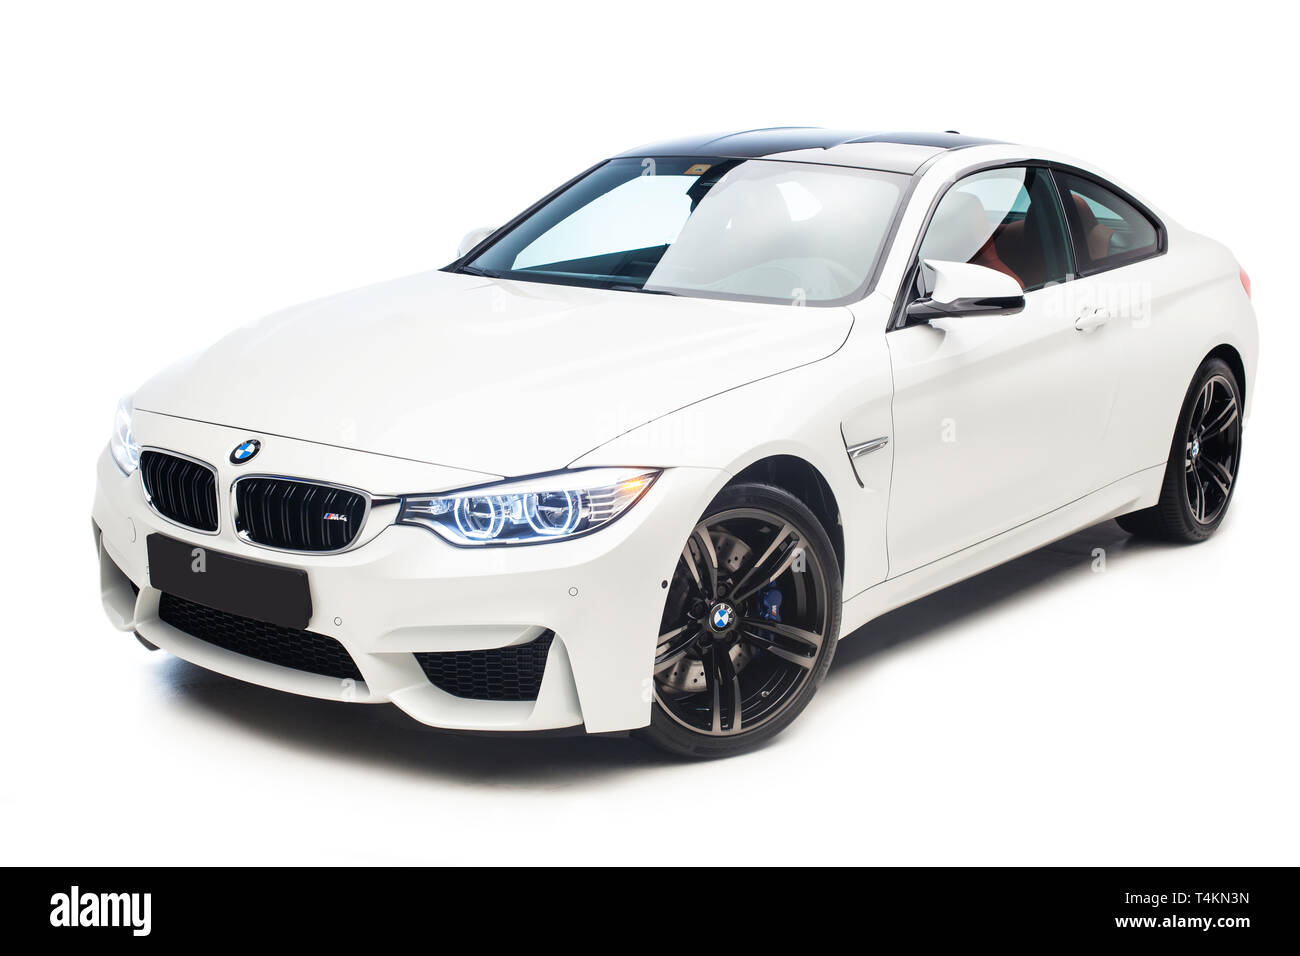 2015 BMW M4 Coupe - Stock Image